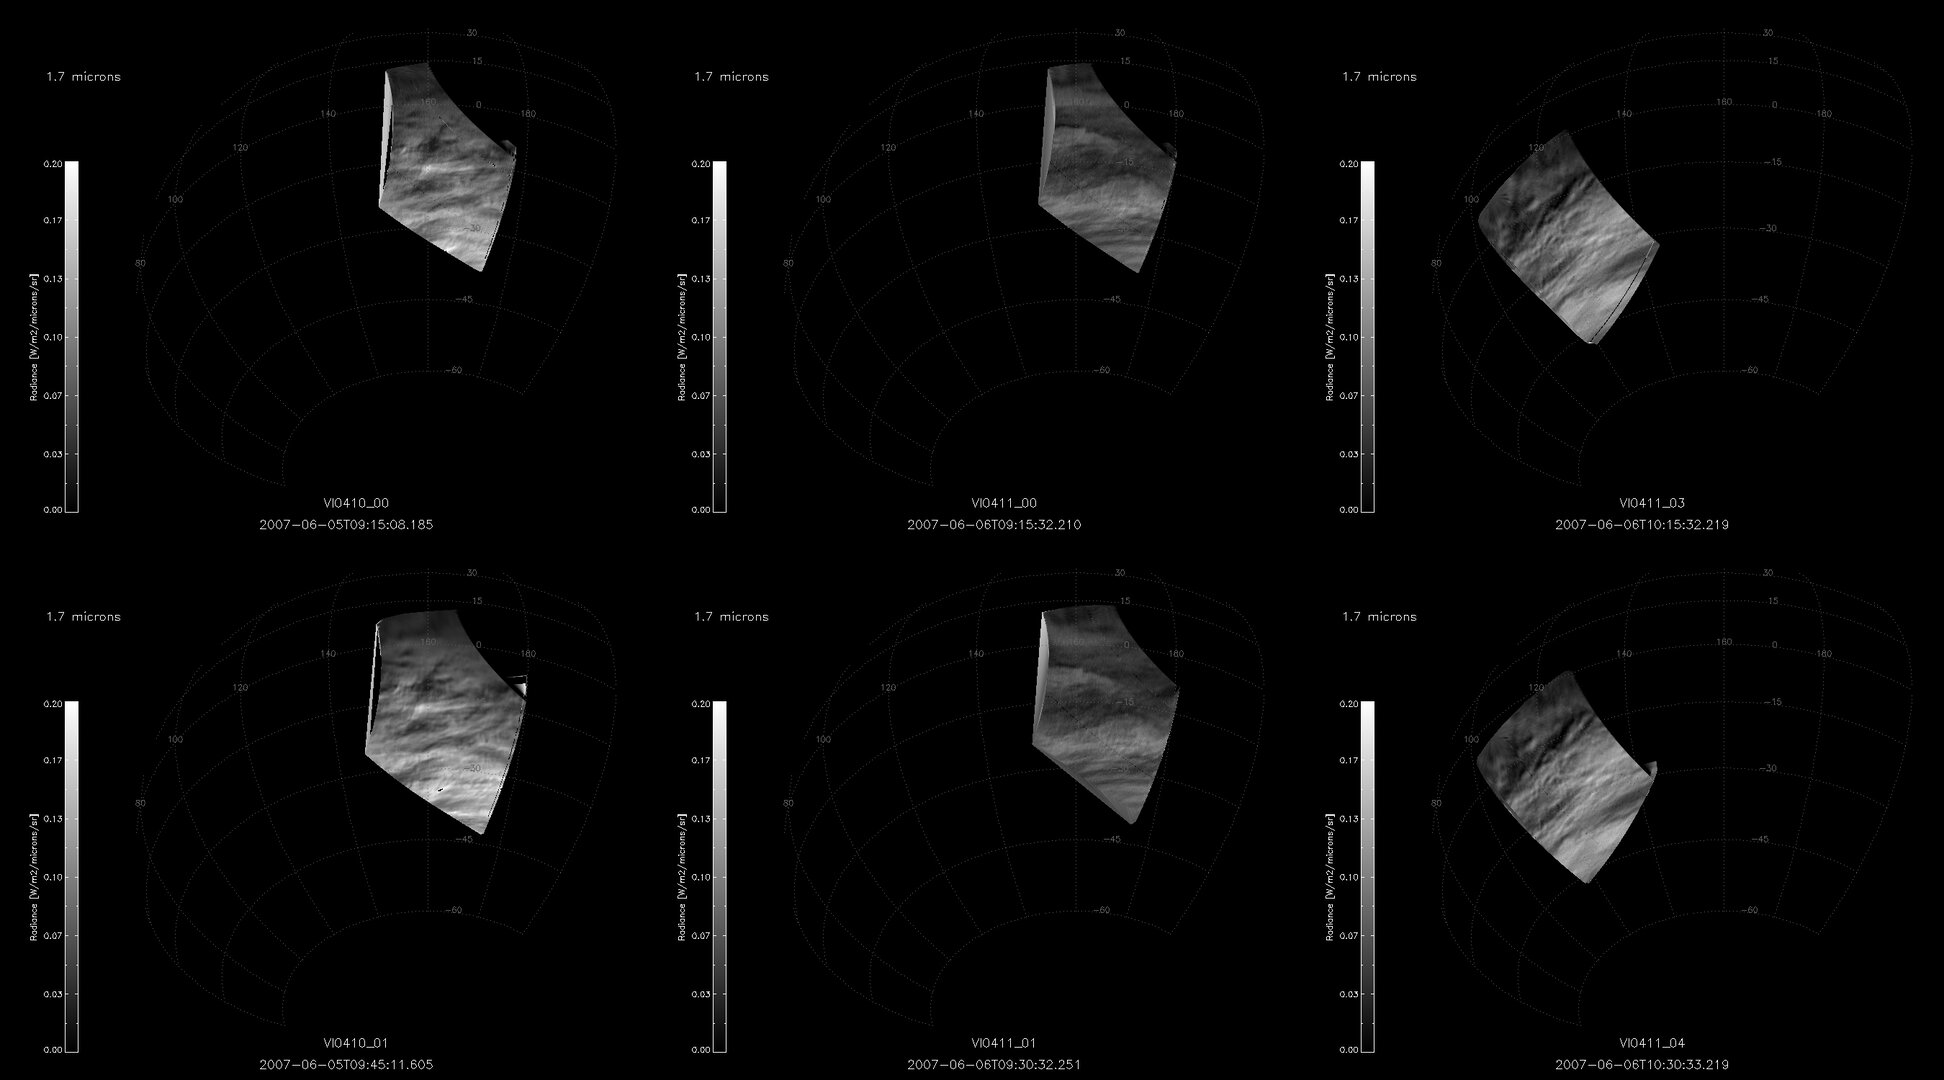 VIRTIS images of the clouds that MESSENGER flew over